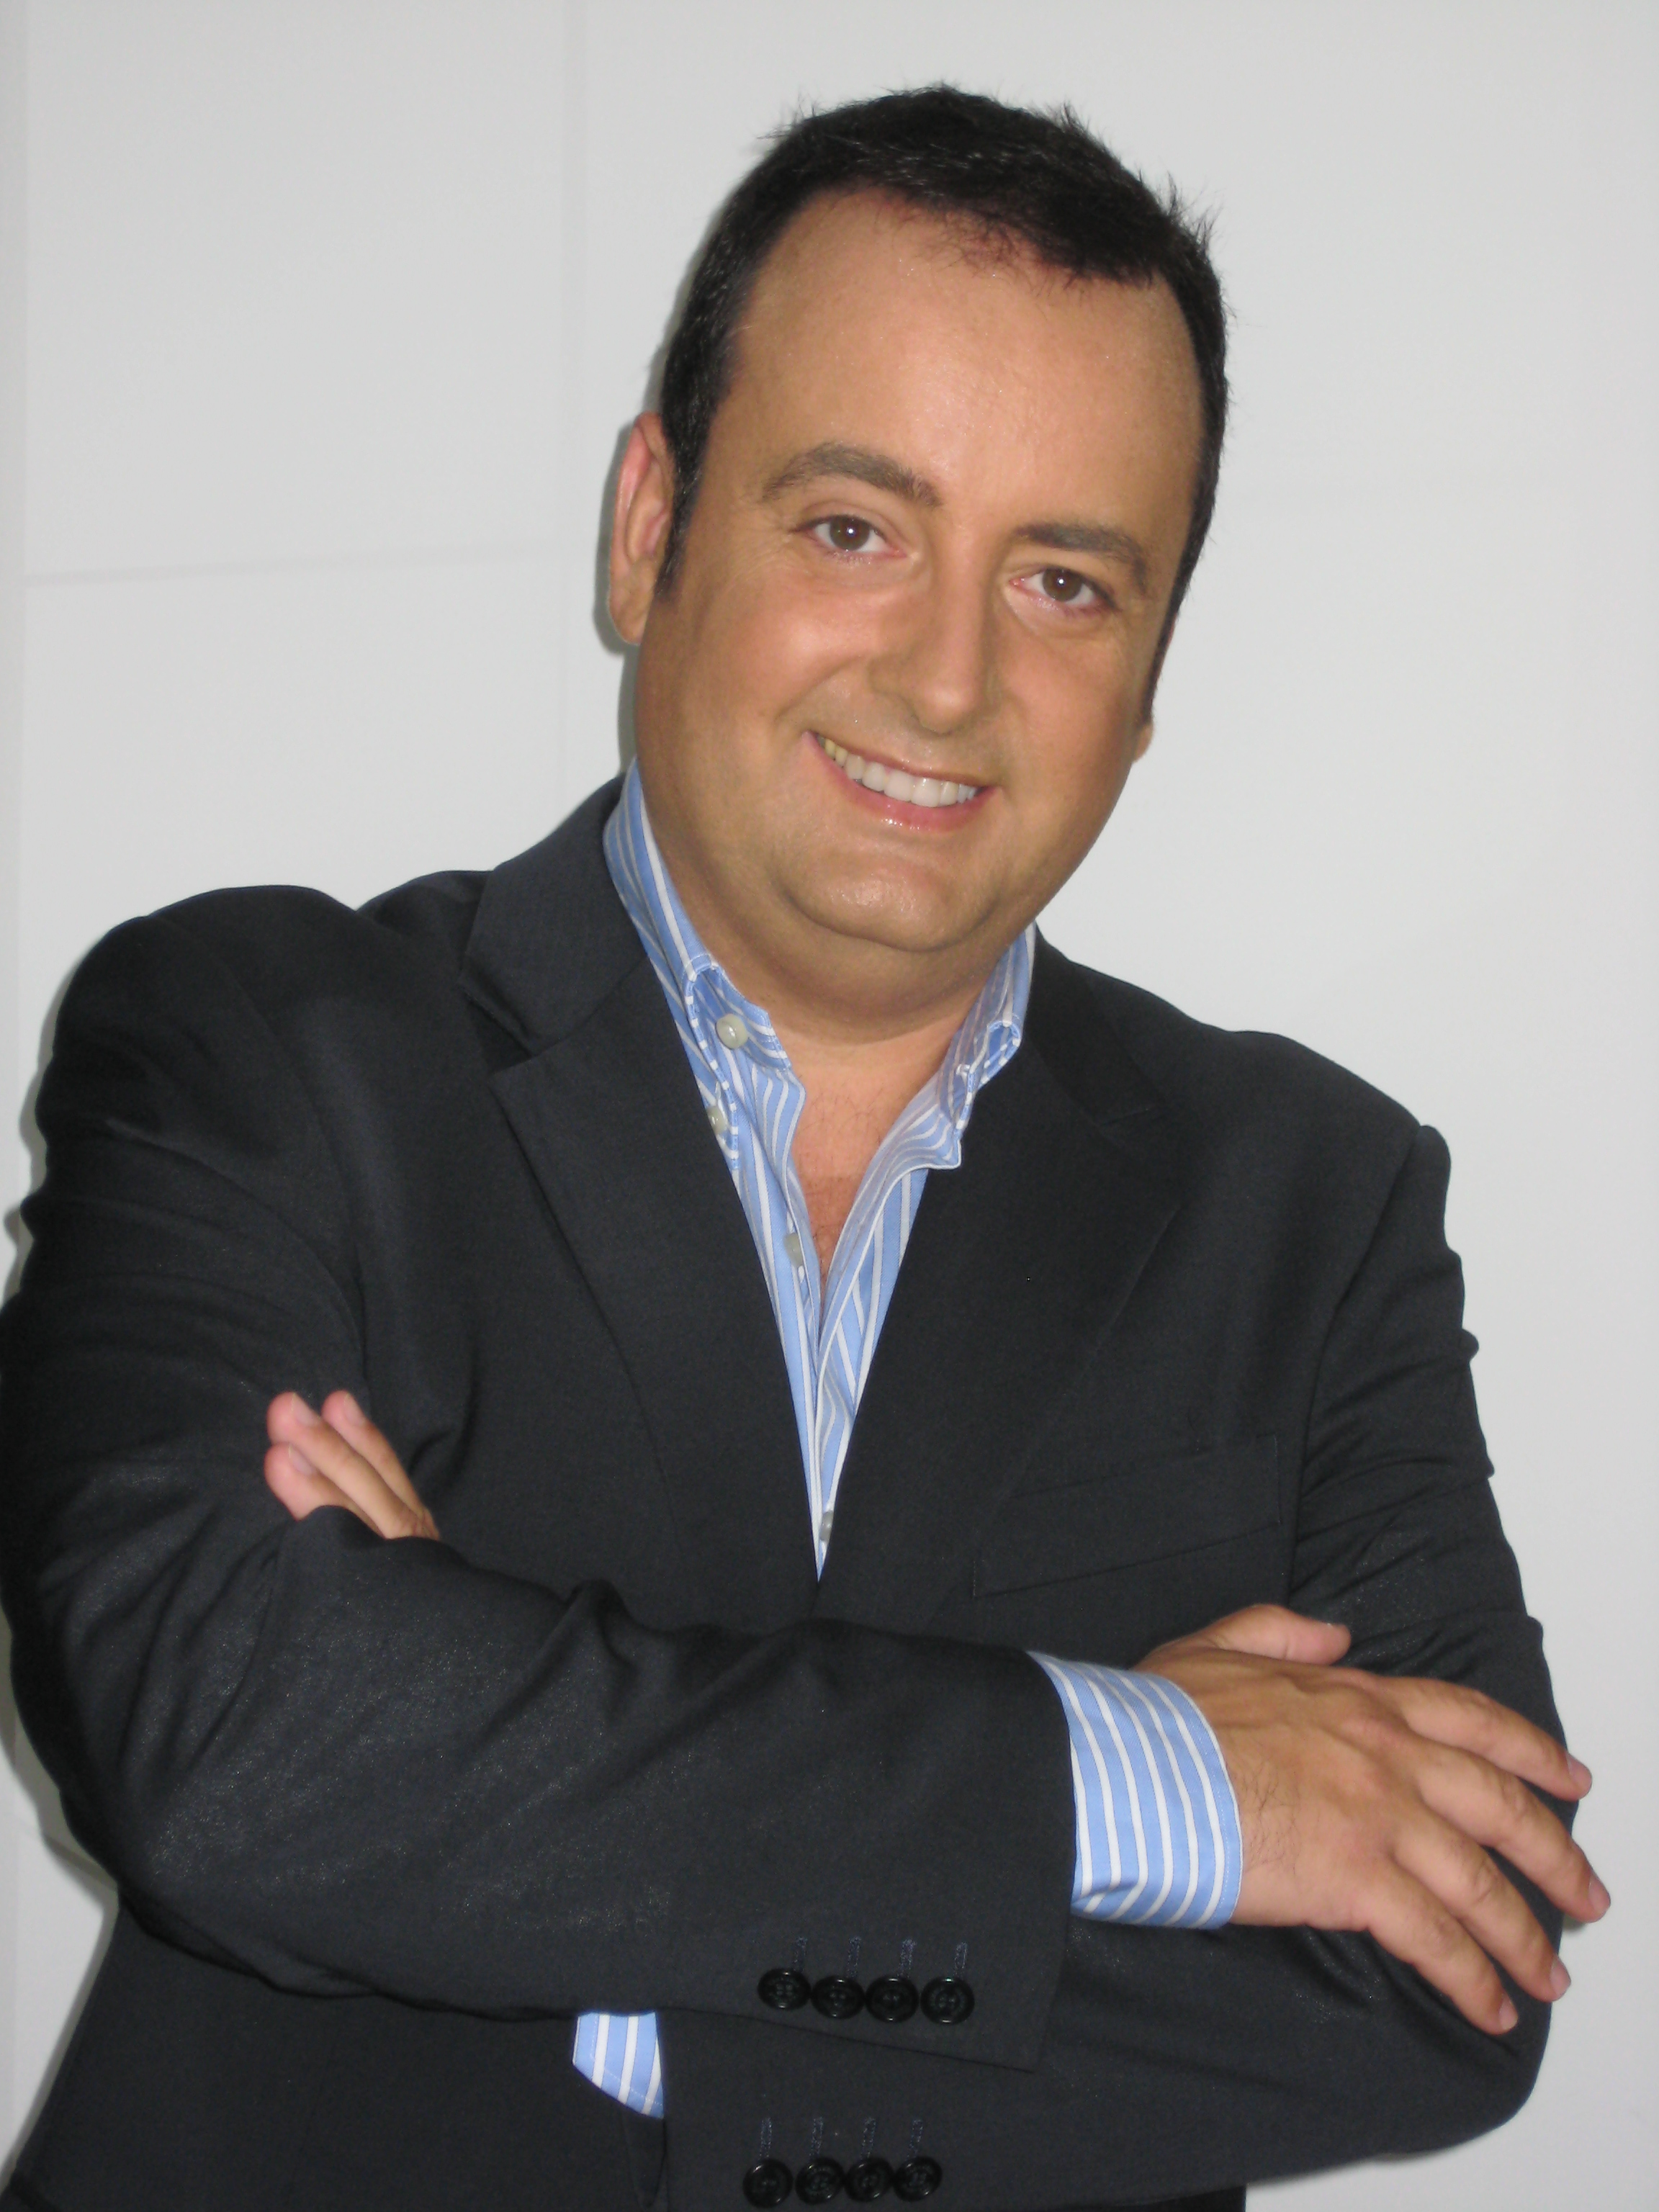 file xavi collado jpg  file xavi collado jpg